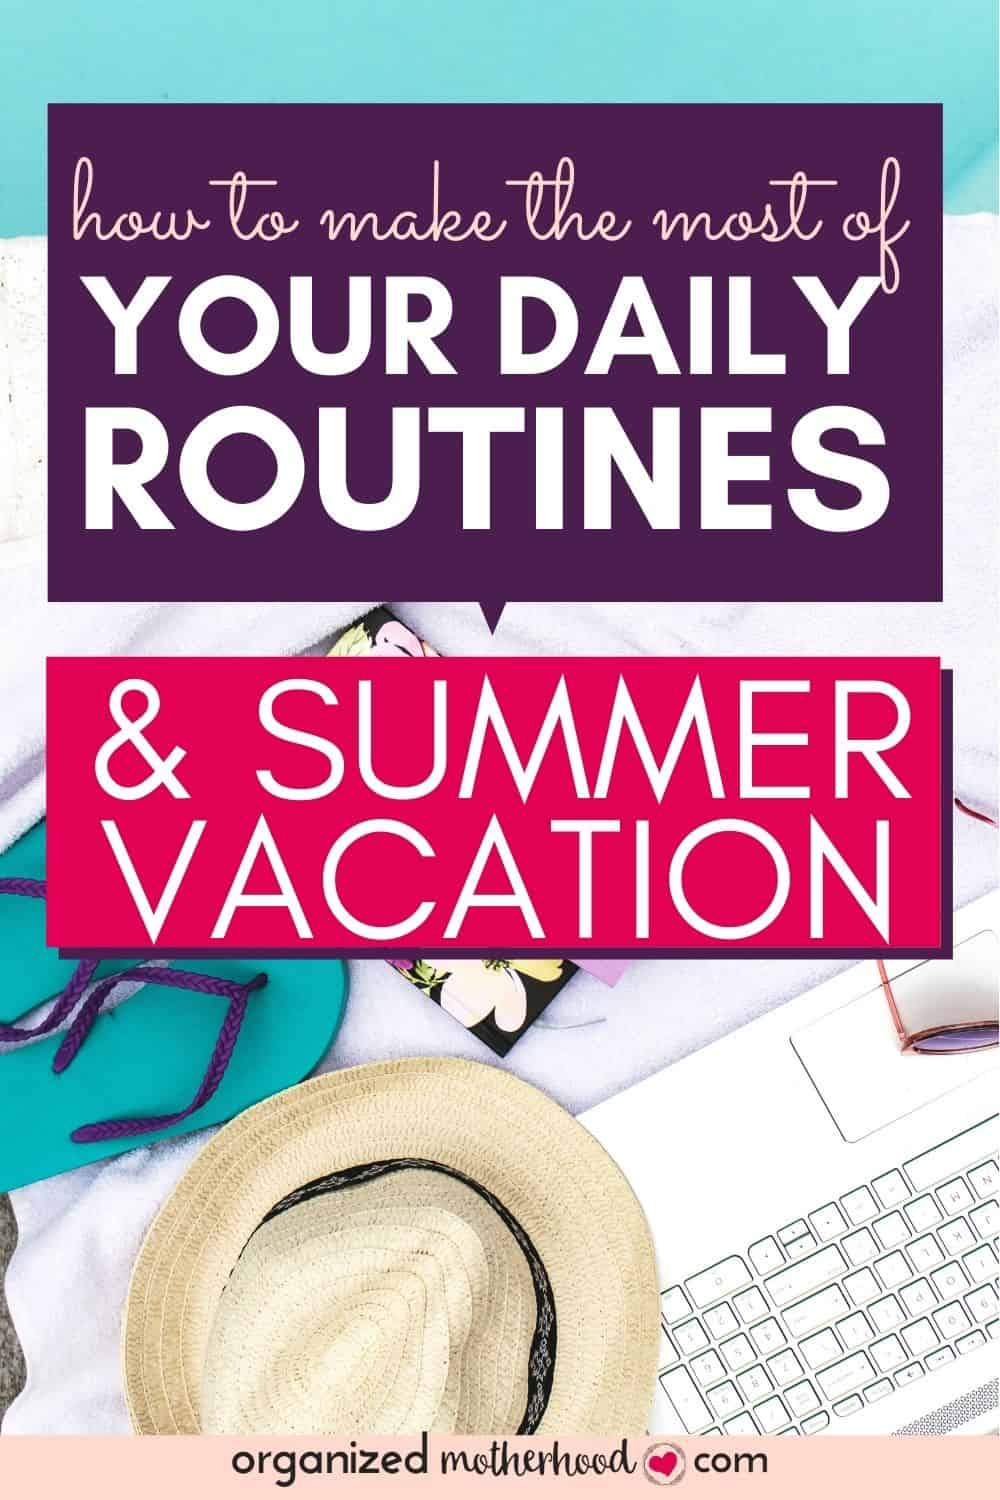 how to make the most of your daily routines and summer vacation